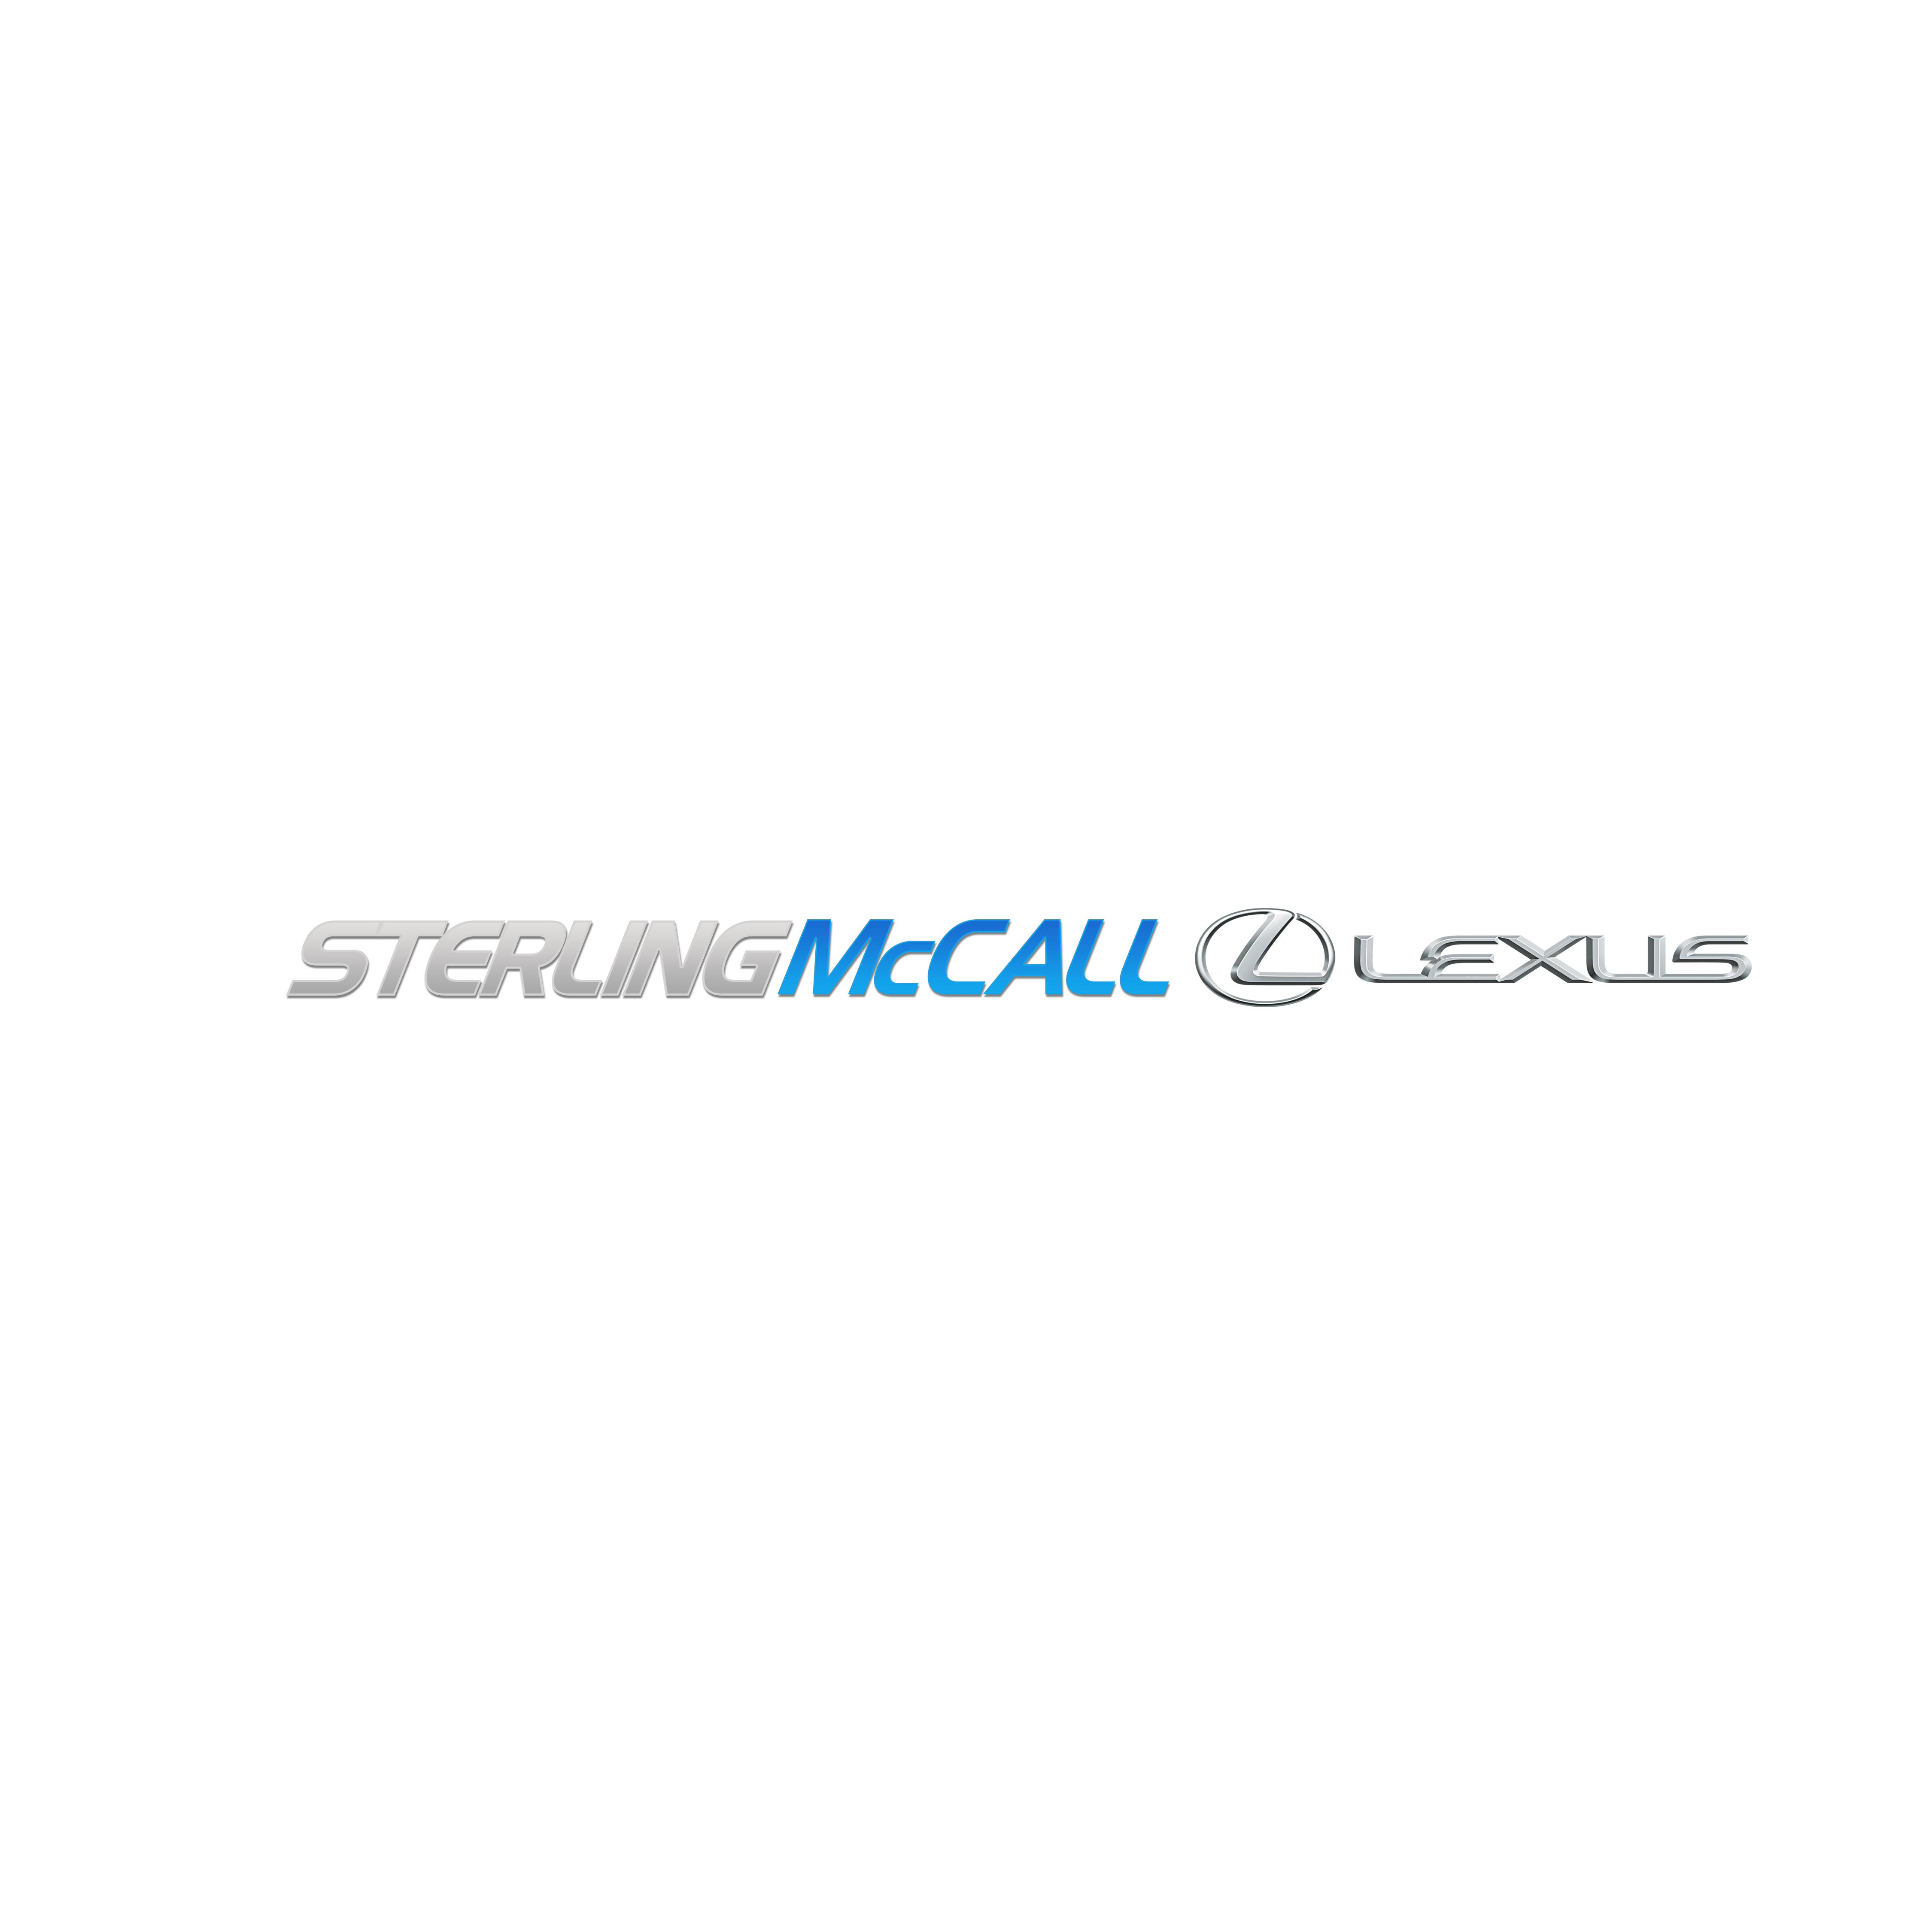 Delightful Sterling McCall Lexus   Houston, TX 77074   (713)995 2600 | ShowMeLocal.com